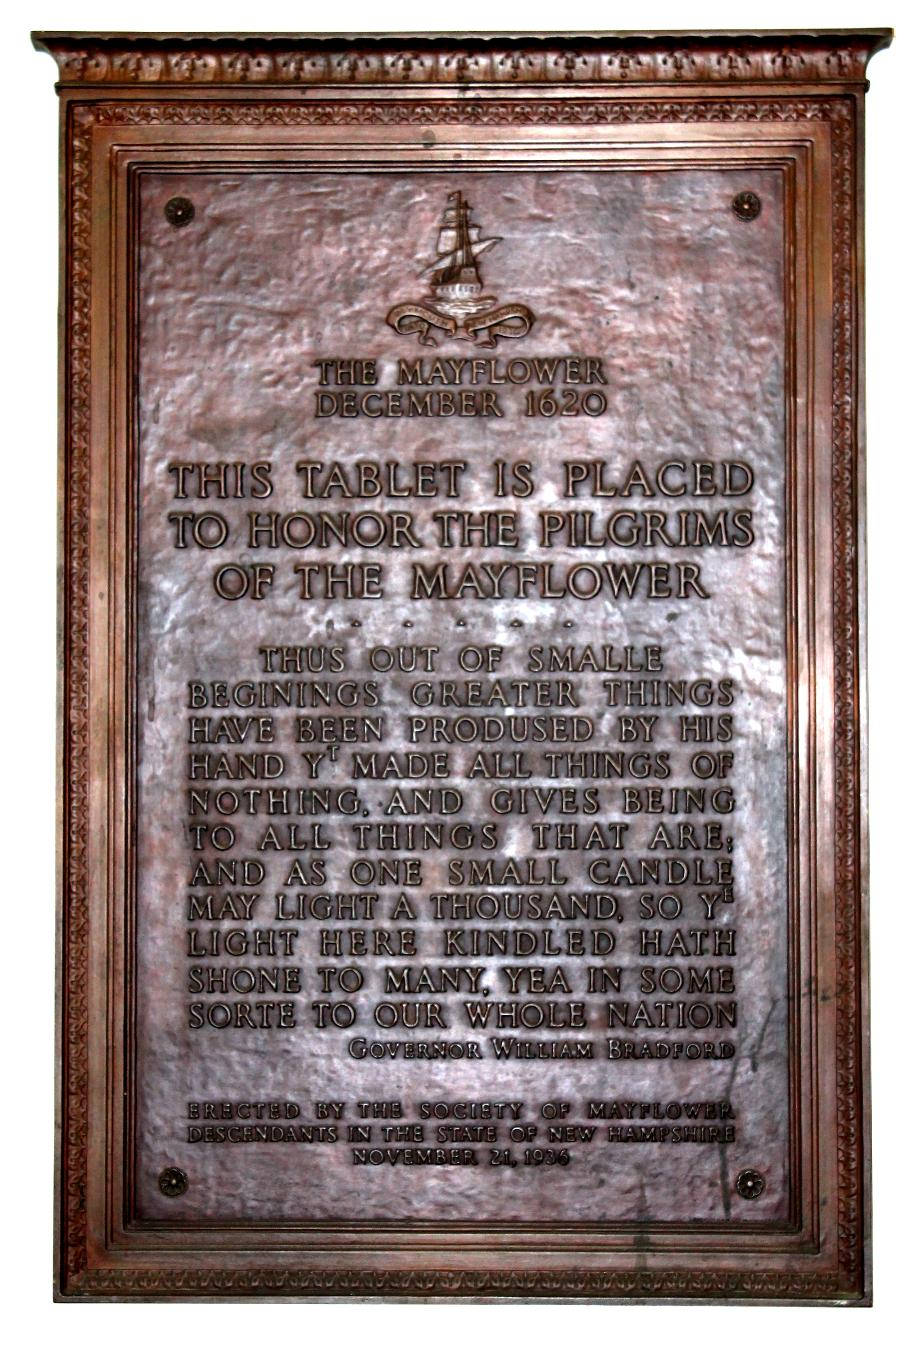 Mayflower Dedication Tablet - NH State House